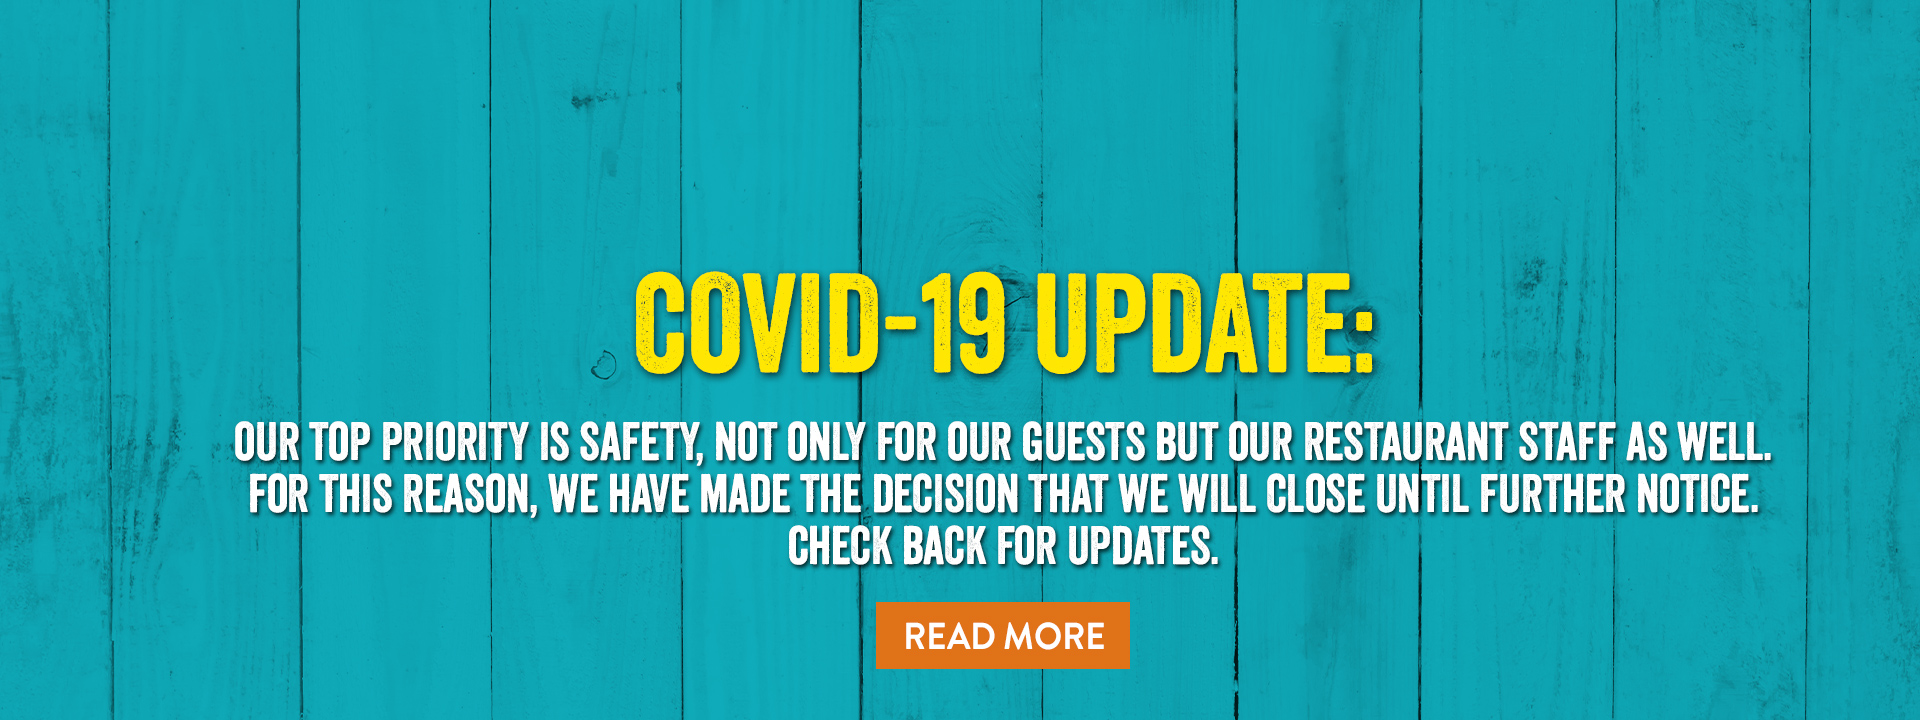 Covid-19 Update - Read More